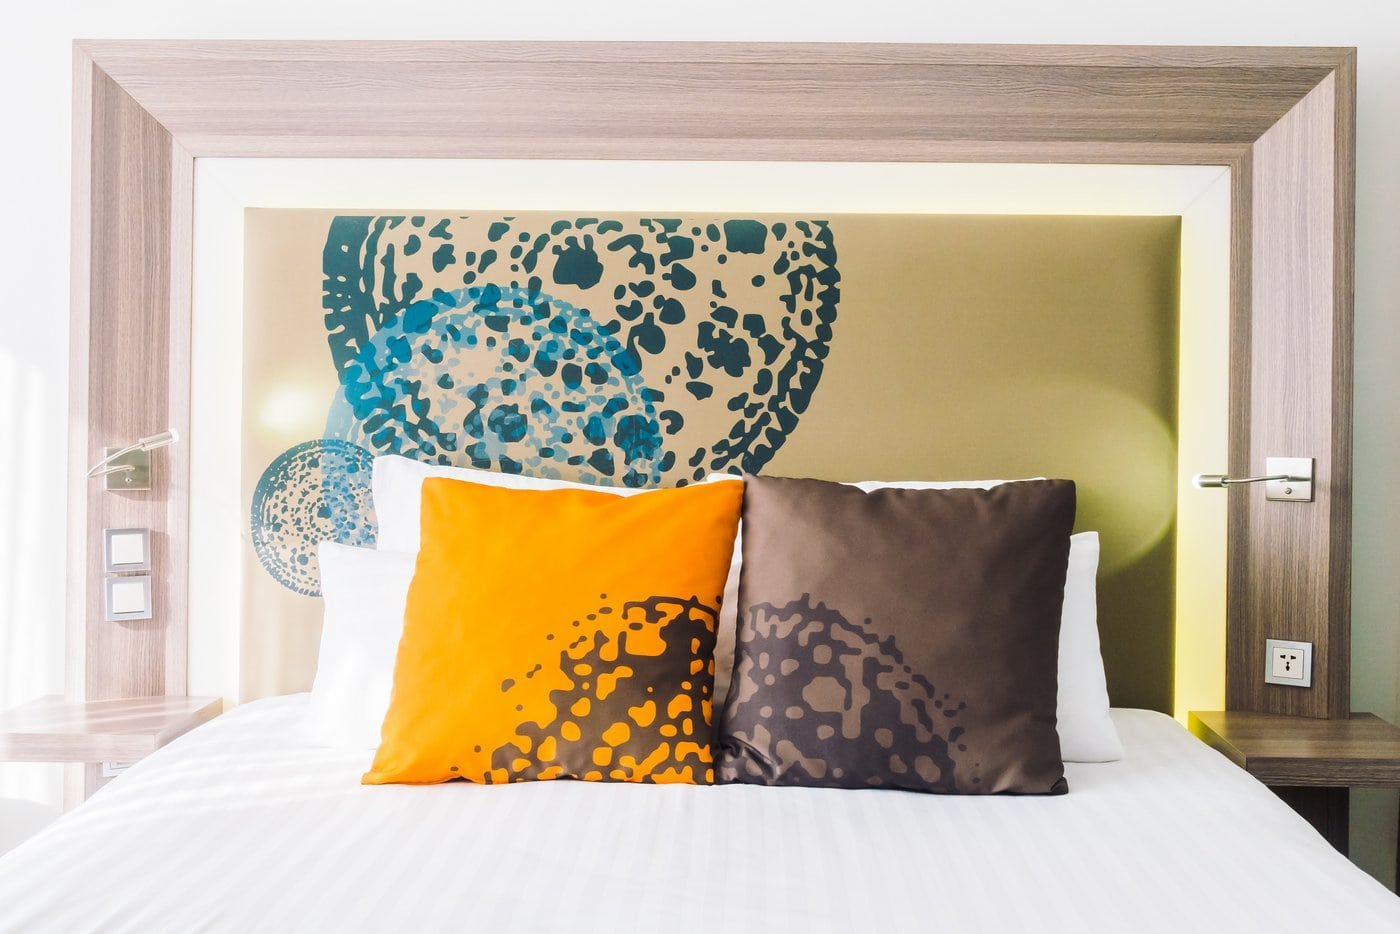 Hotel bed pillows